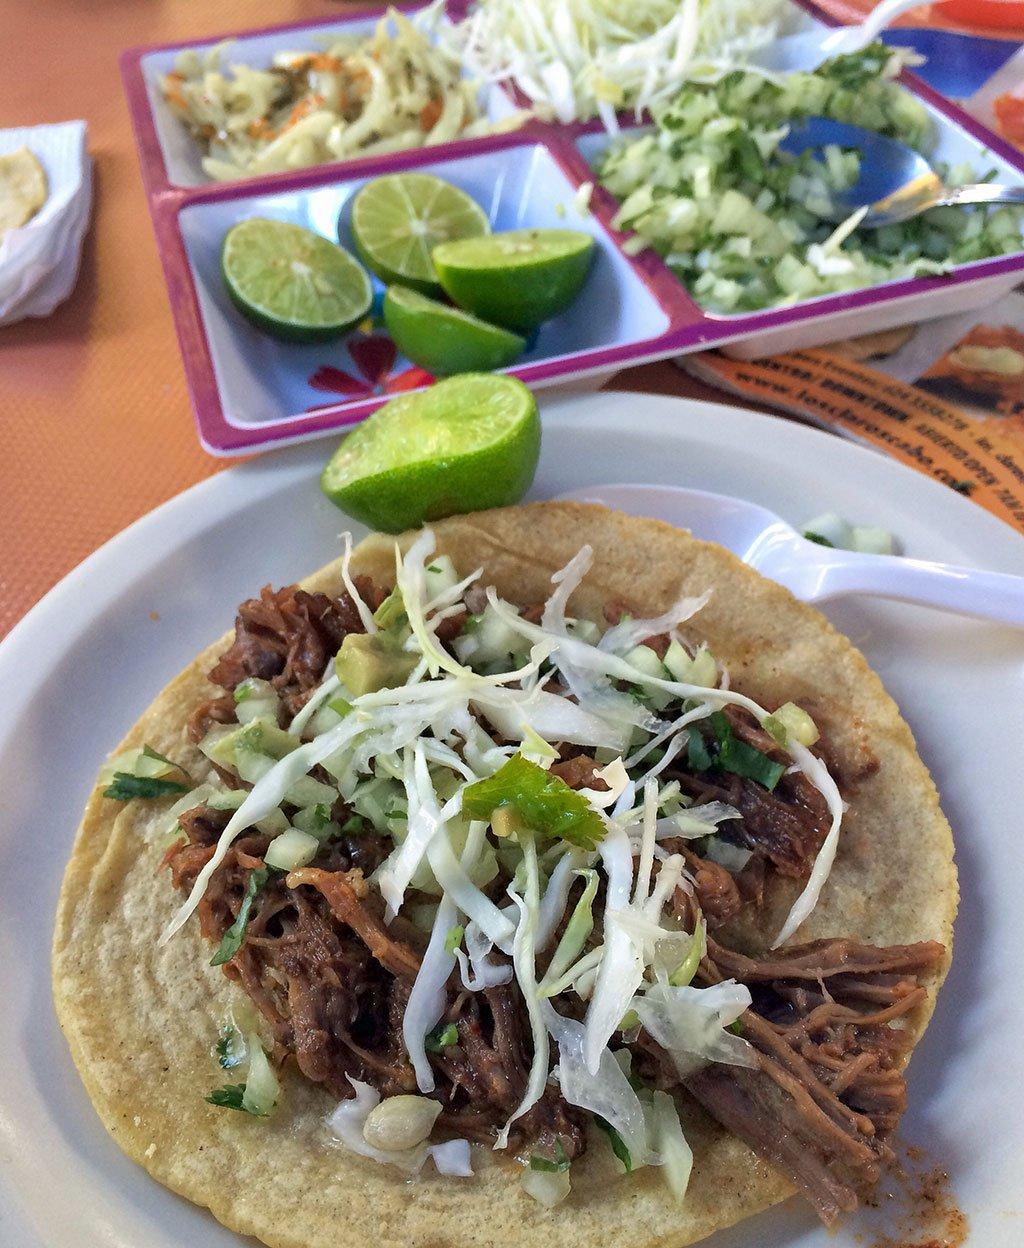 Tired of eating at the usual gringo dives in Los Caobs? Find out where and what the locals eat on a Juan More Taco Tour in downtown Cabo San Lucas.